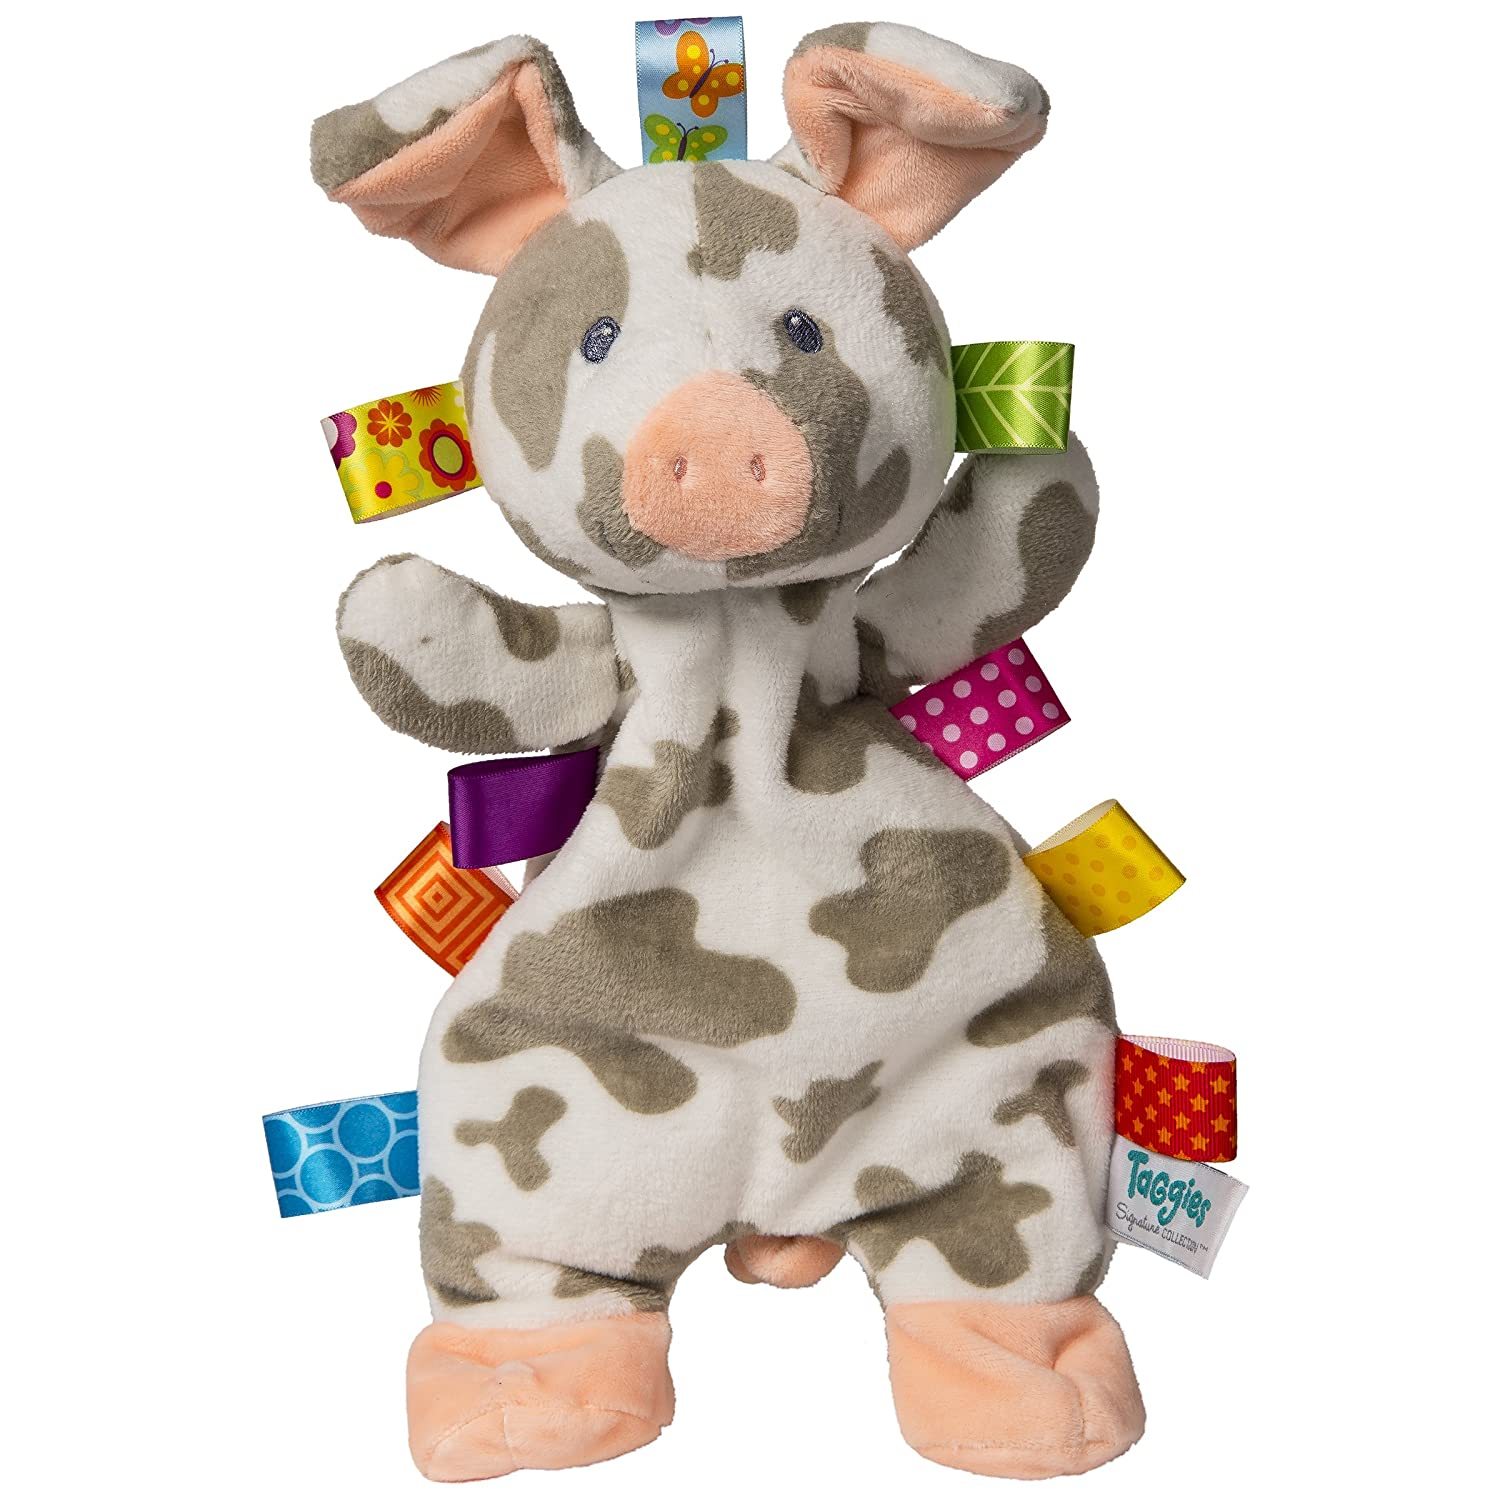 Taggies Patches Pig Lovey Soft Toy Mary Meyer 40037